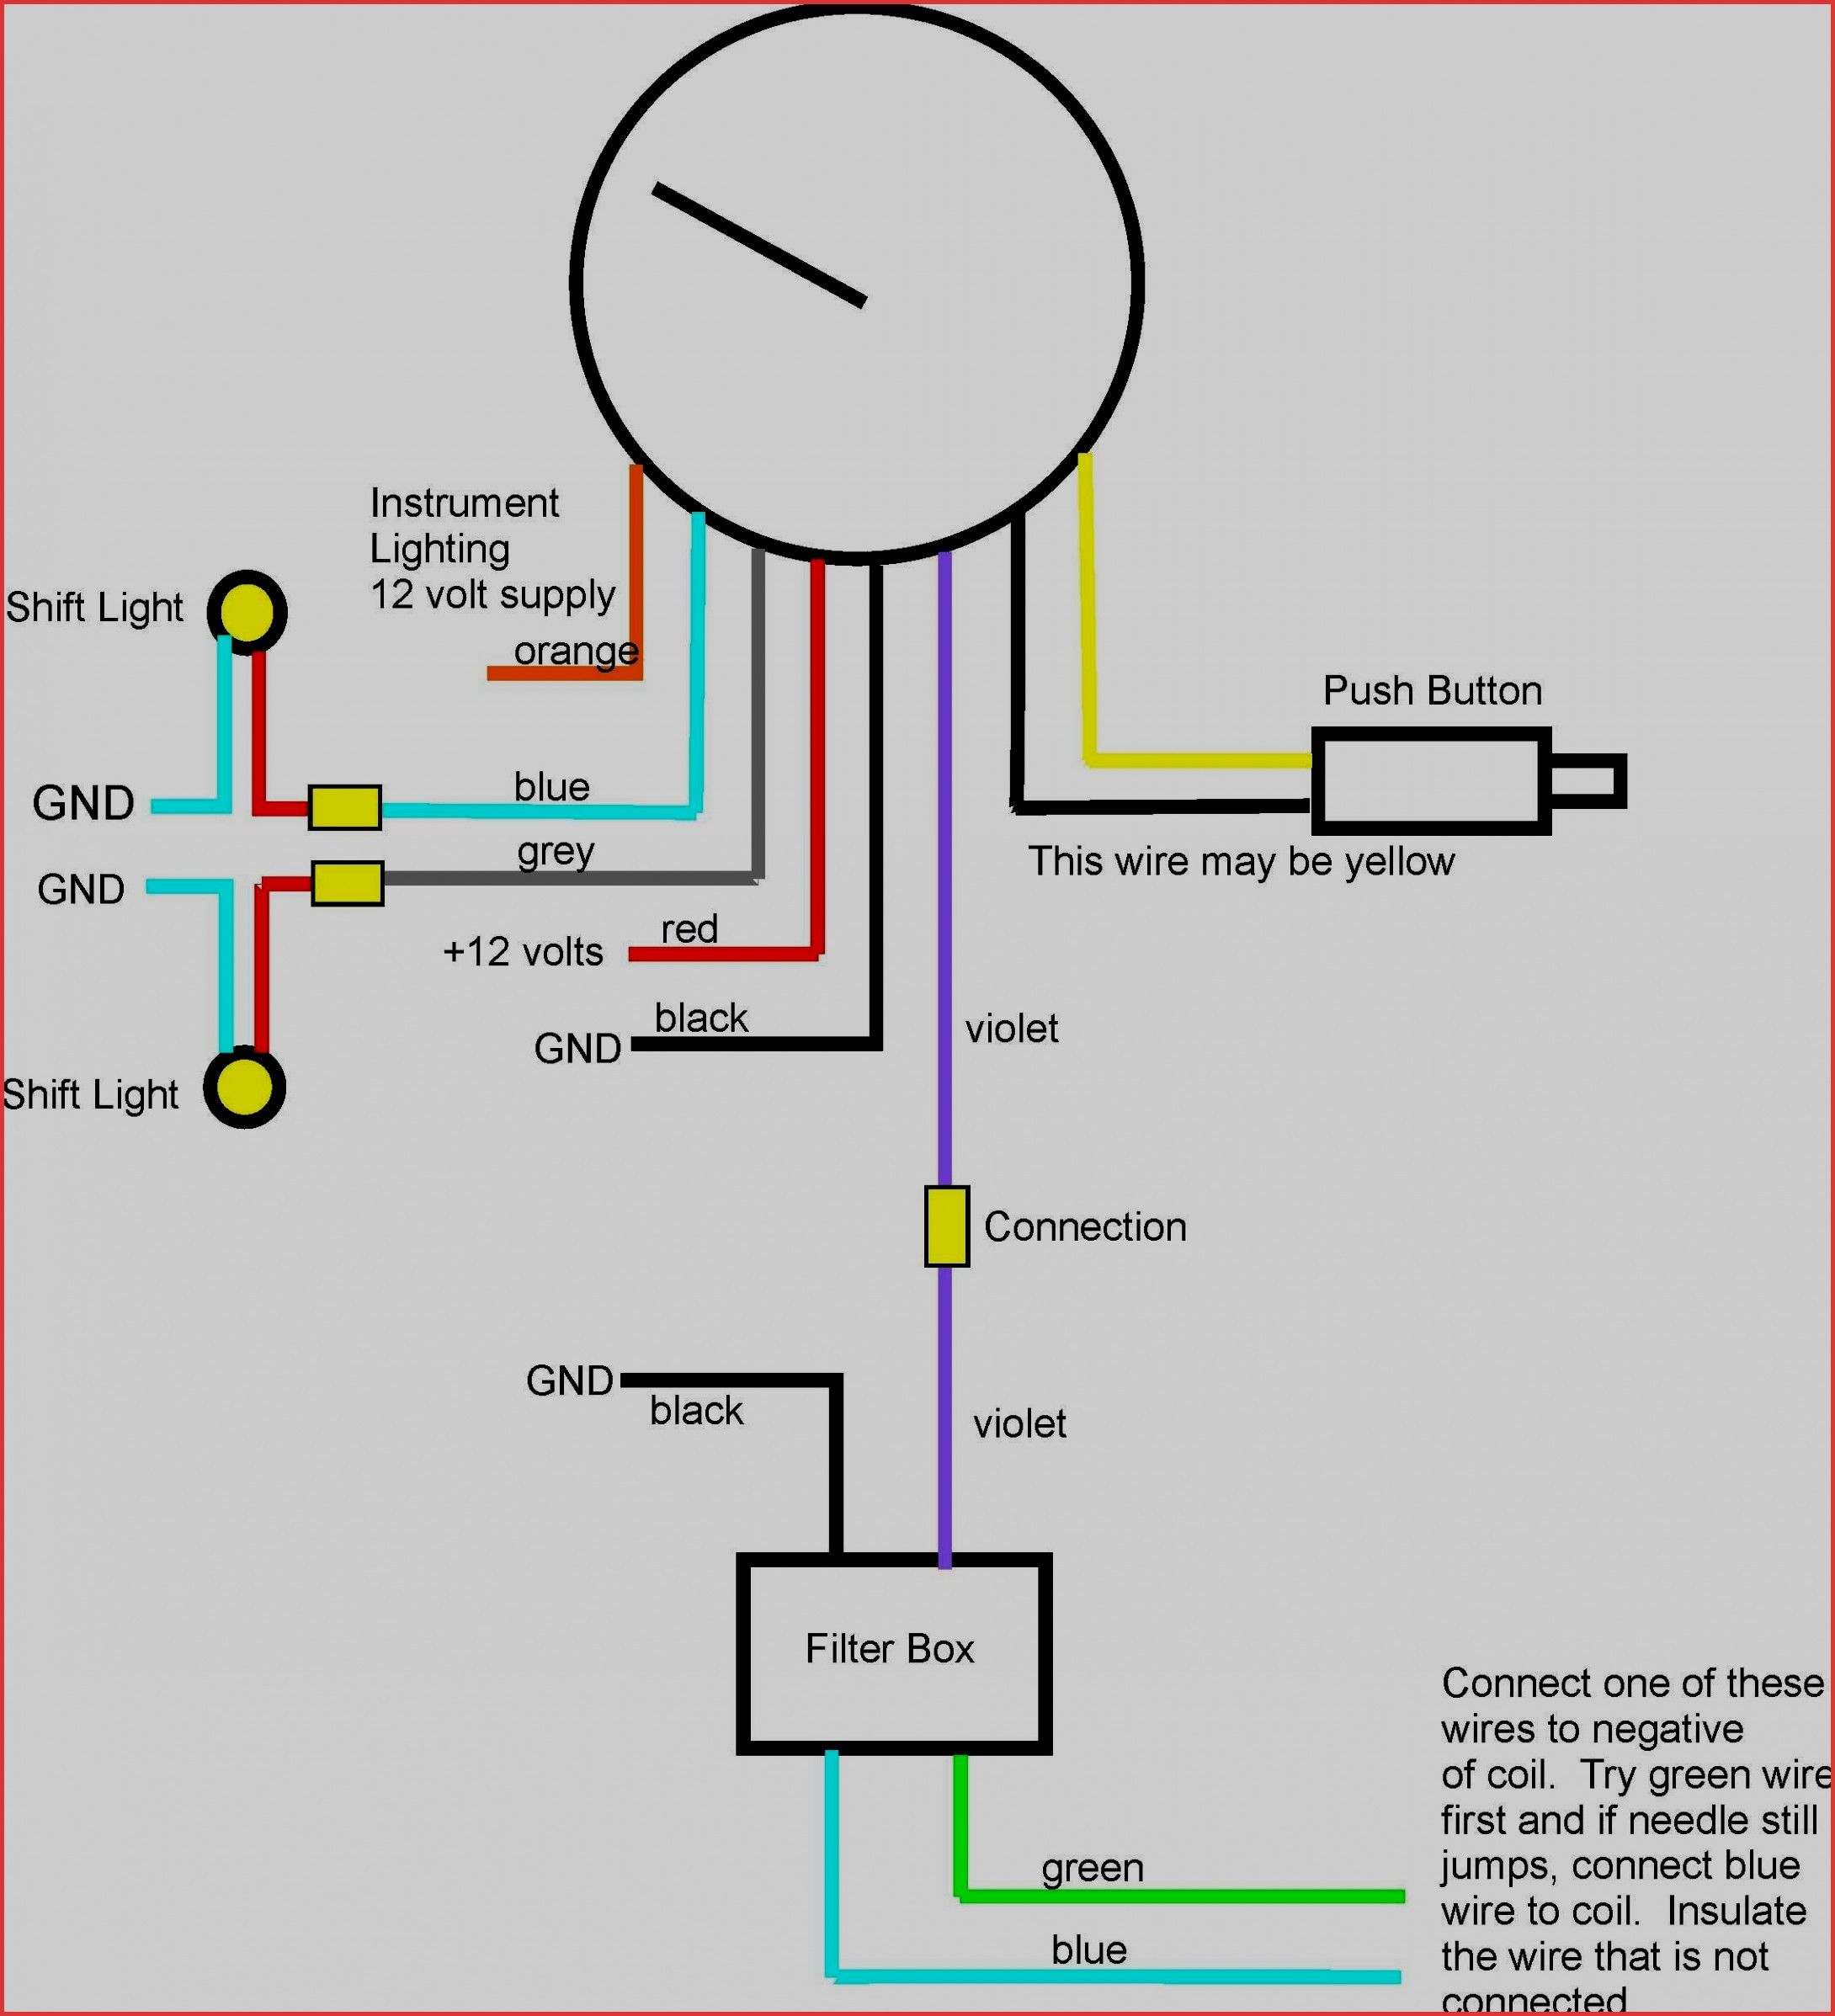 [ZHKZ_3066]  New Johnson Ignition Switch Wiring Diagram | Tachometer, Diagram, Electrical  diagram | 12 Ebay Tachometer Wiring Diagram Explained Mini Bike Scooter |  | Pinterest